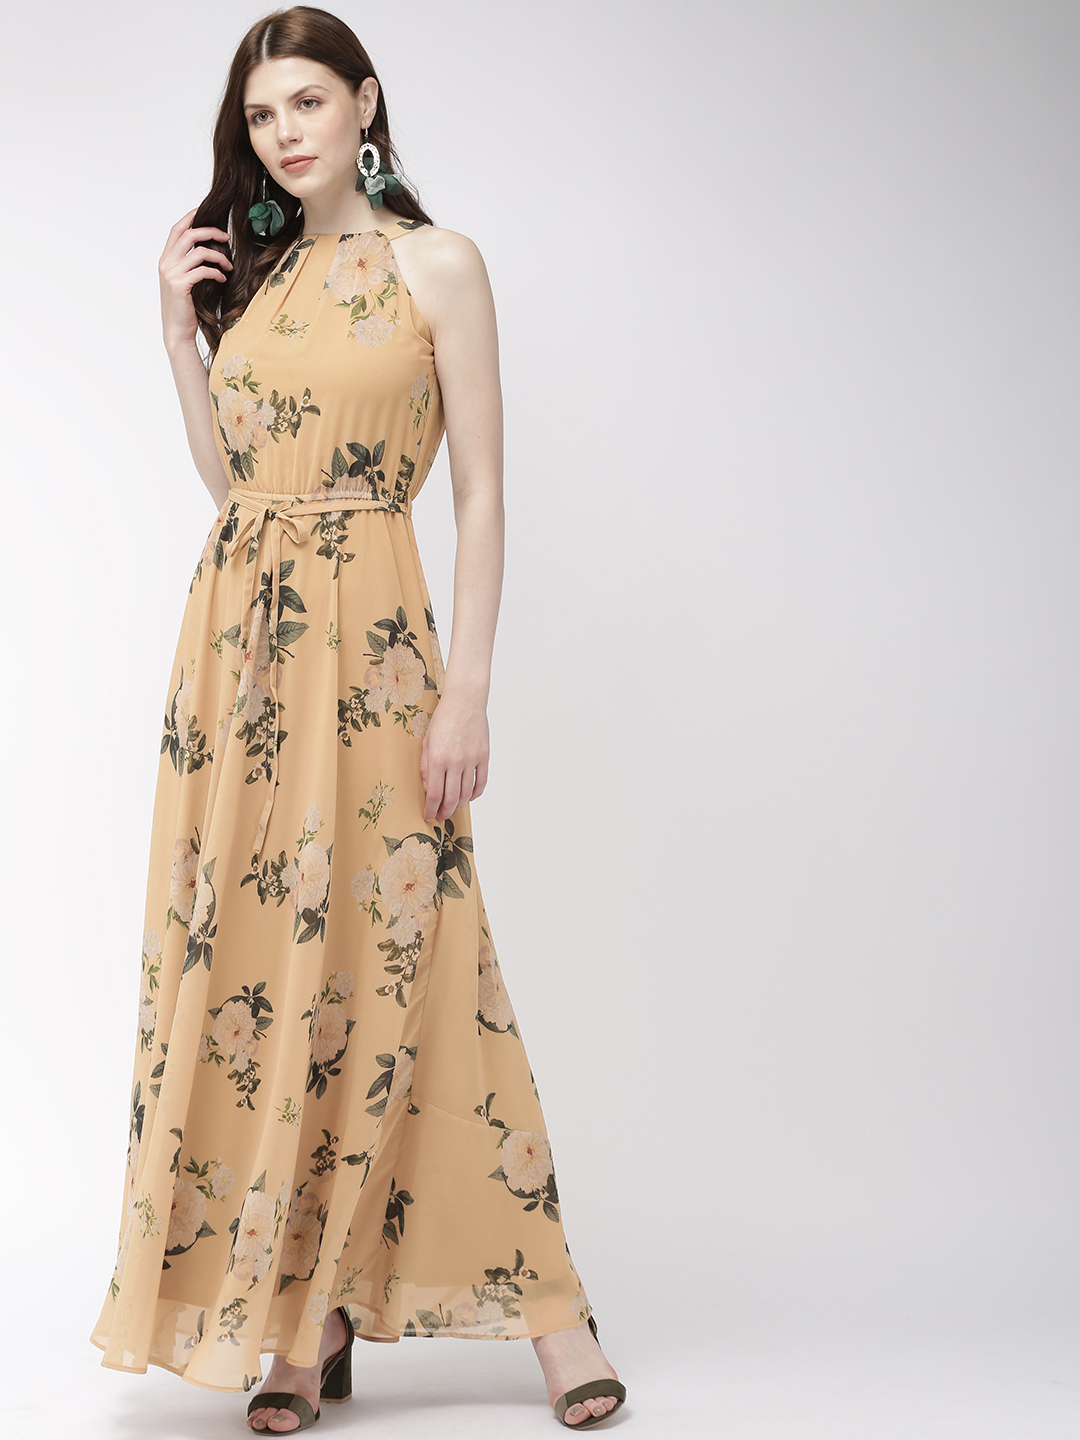 Dresses-Yellow Meet The Blooms Maxi Dress1